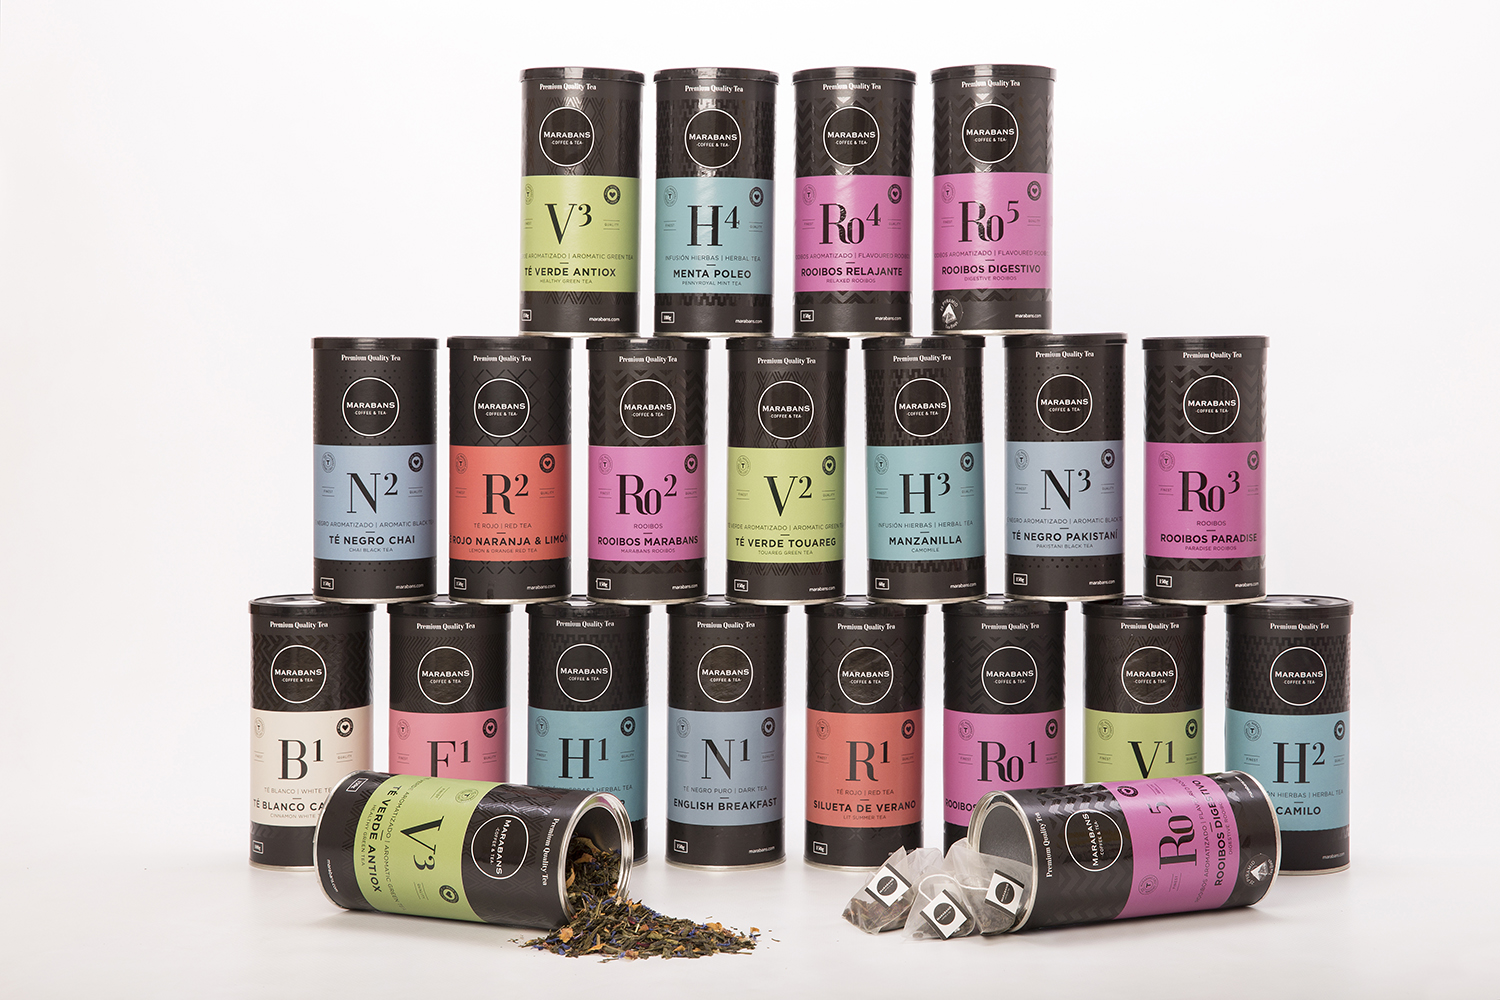 Marabans UK premium range of tea packaging